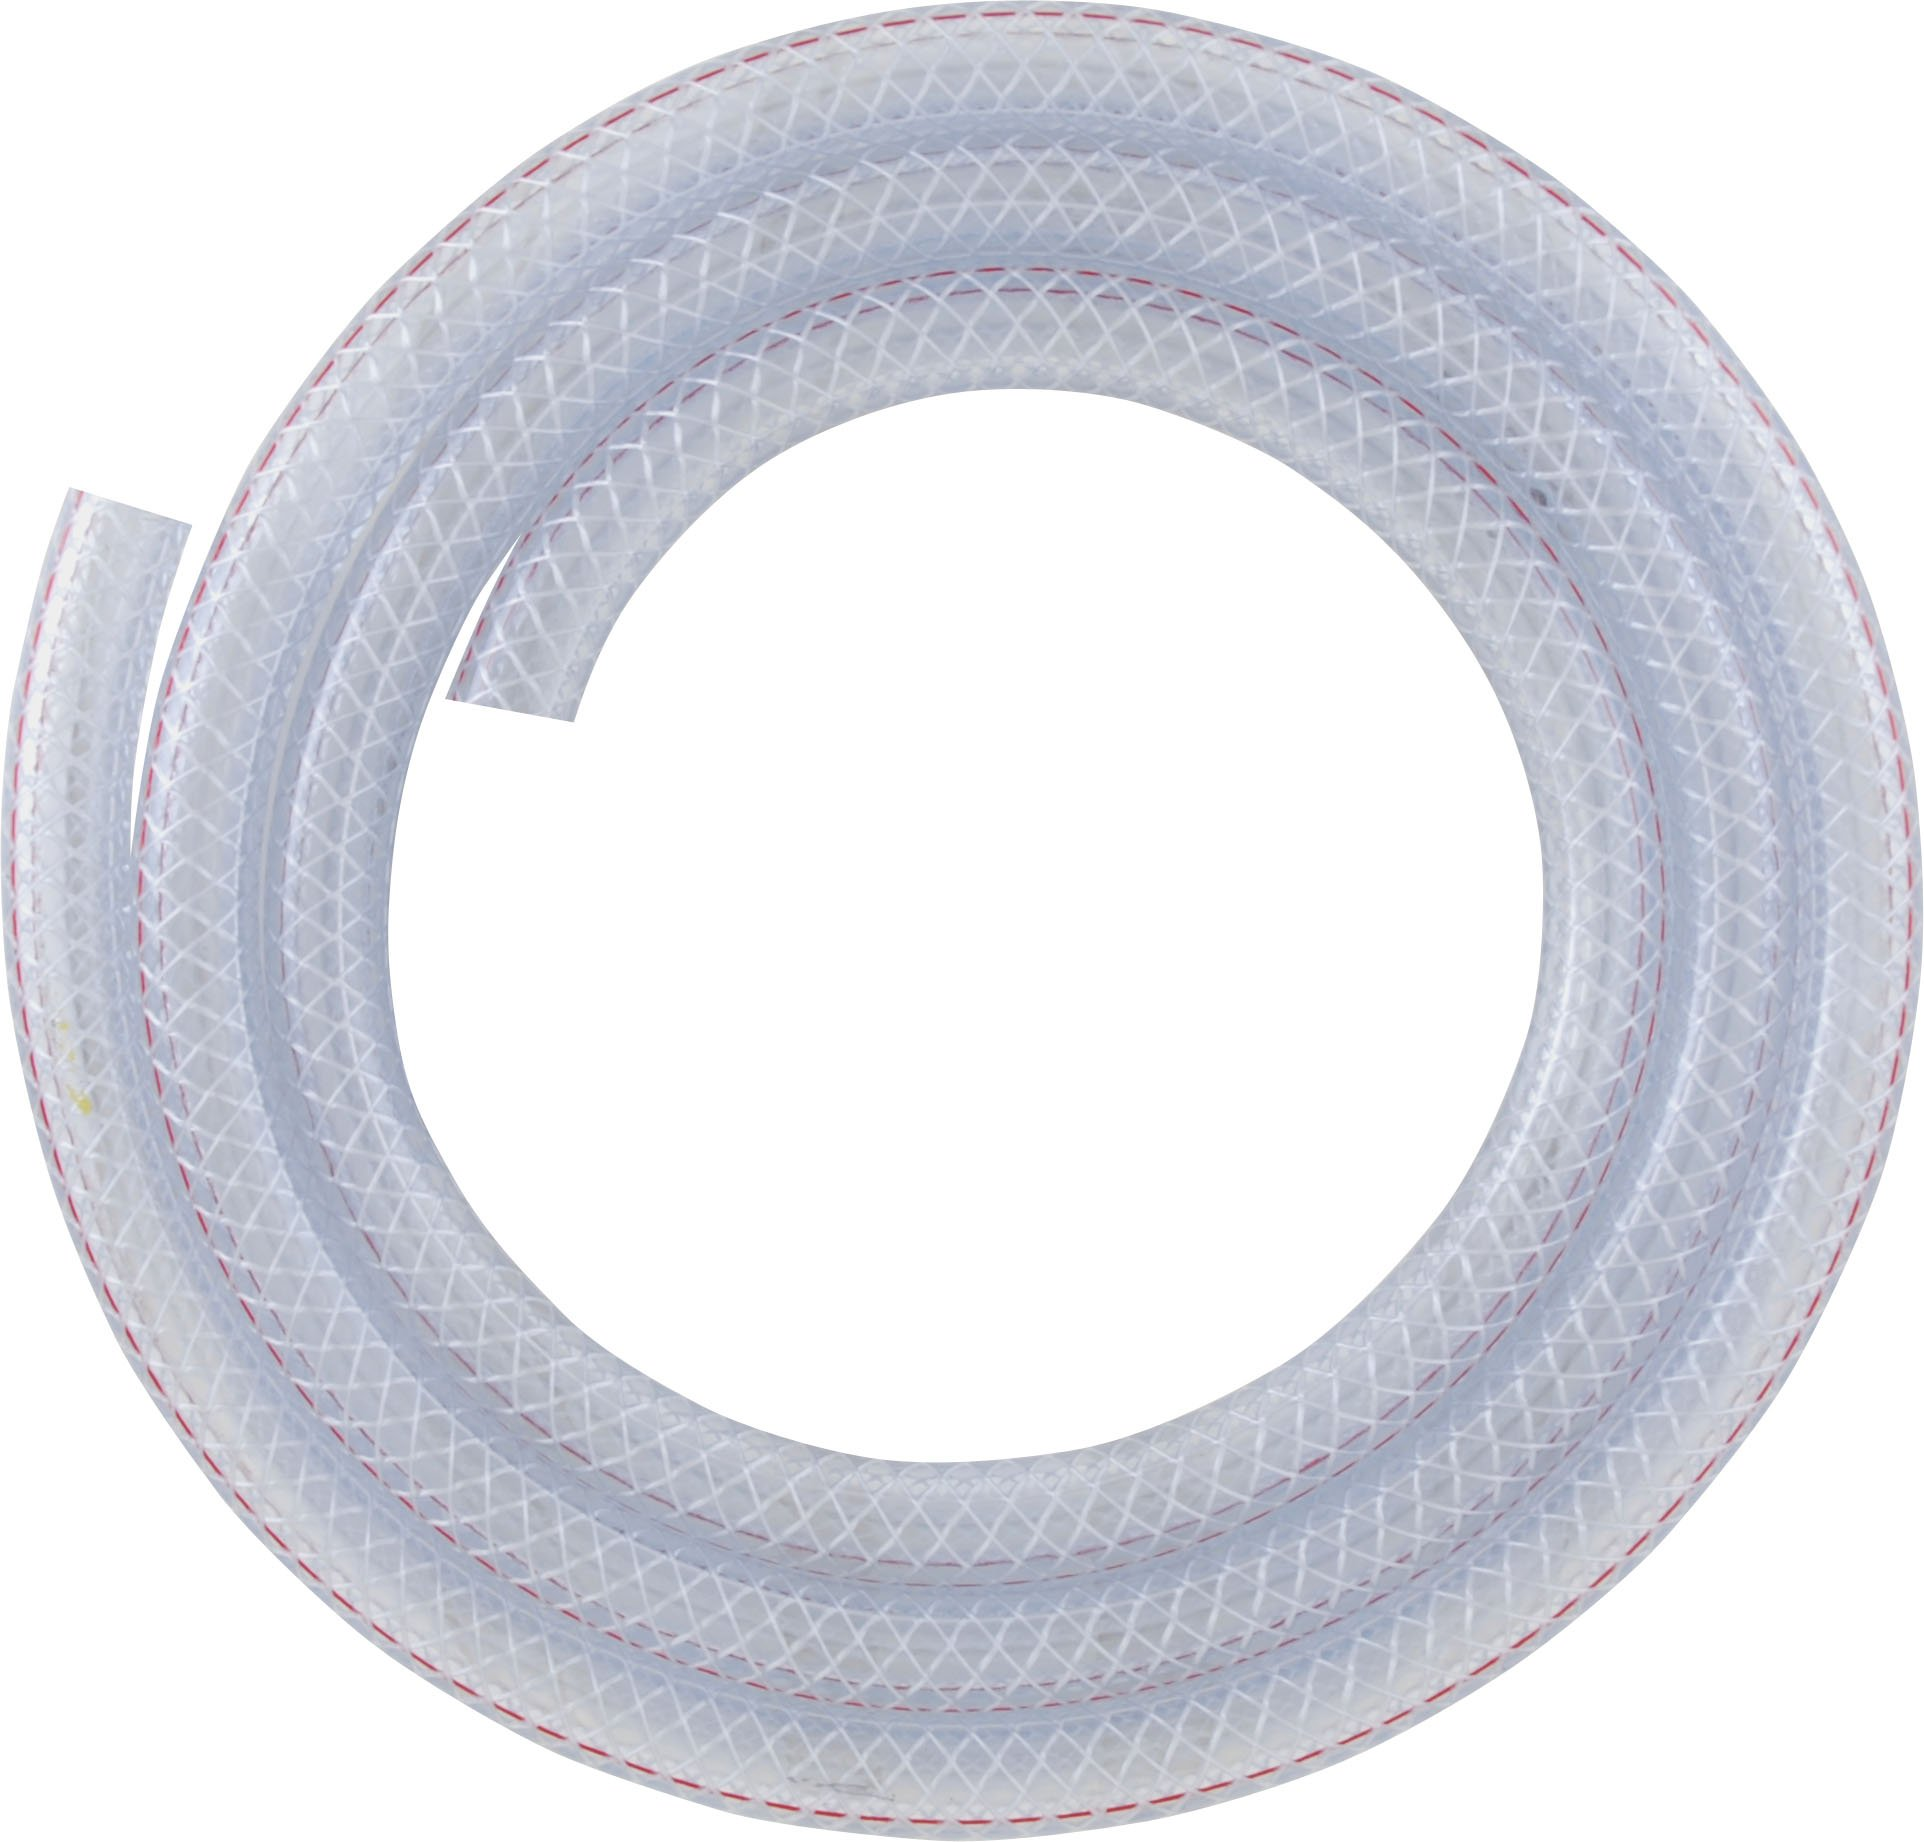 0.170 ID Clear Legris Nylon 12 Tubing 1//4 OD 100 feet Length